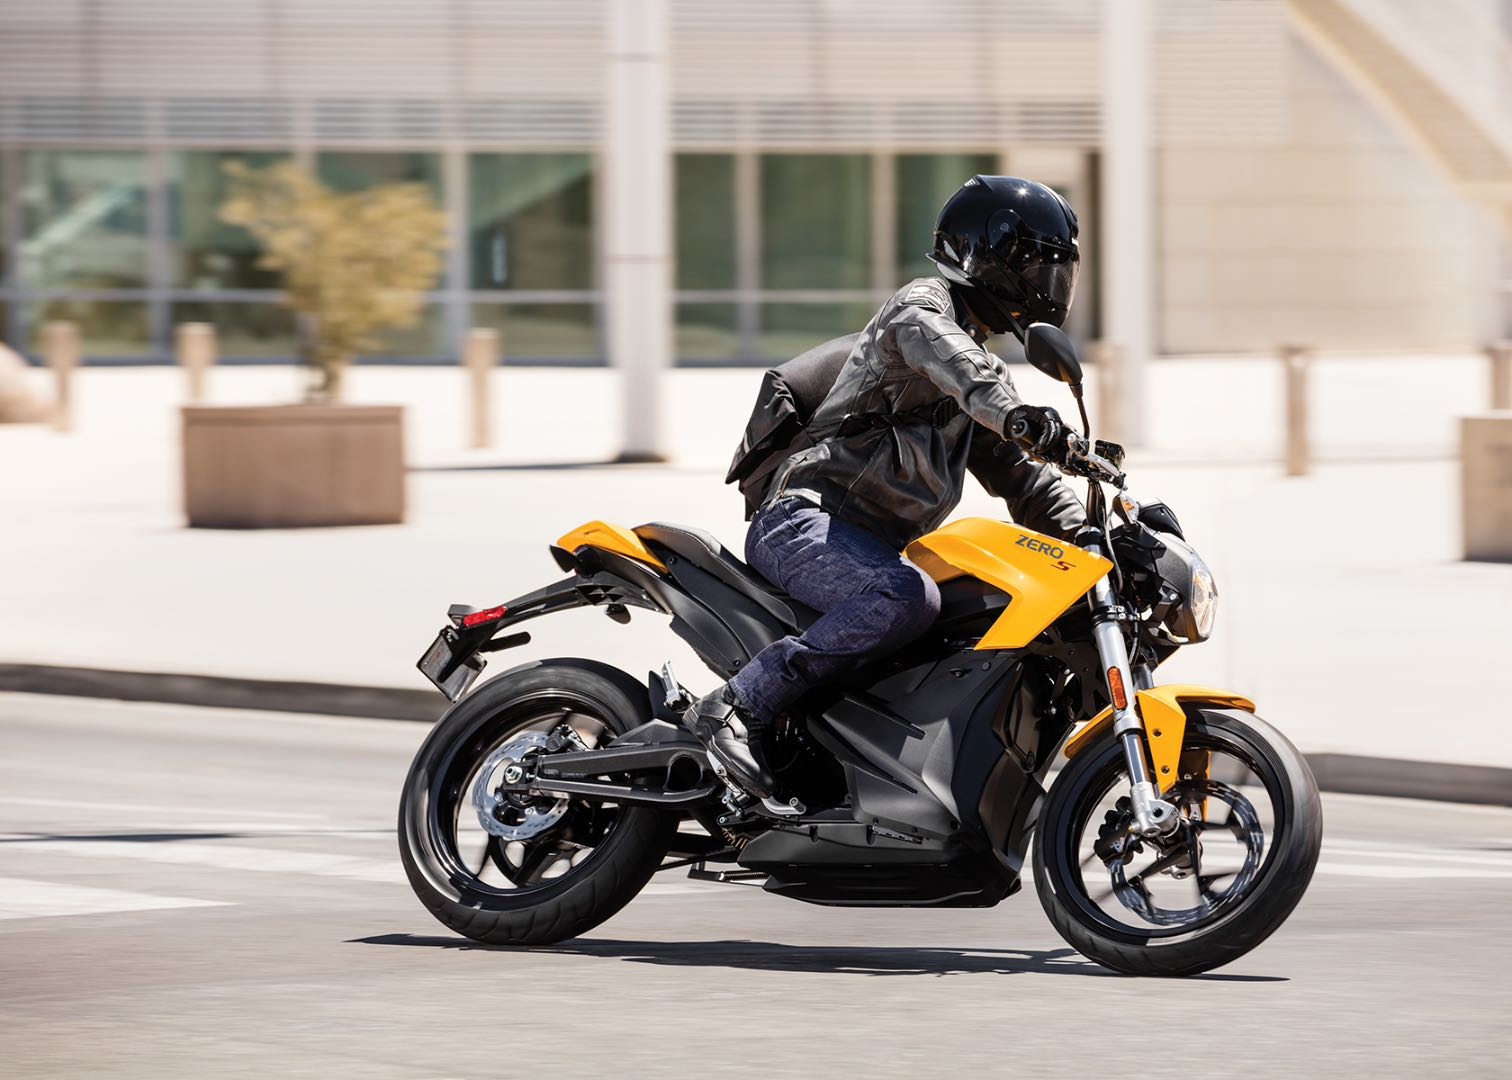 Zero Motorcycles strive hard to break boundaries in the electrical vehicle world